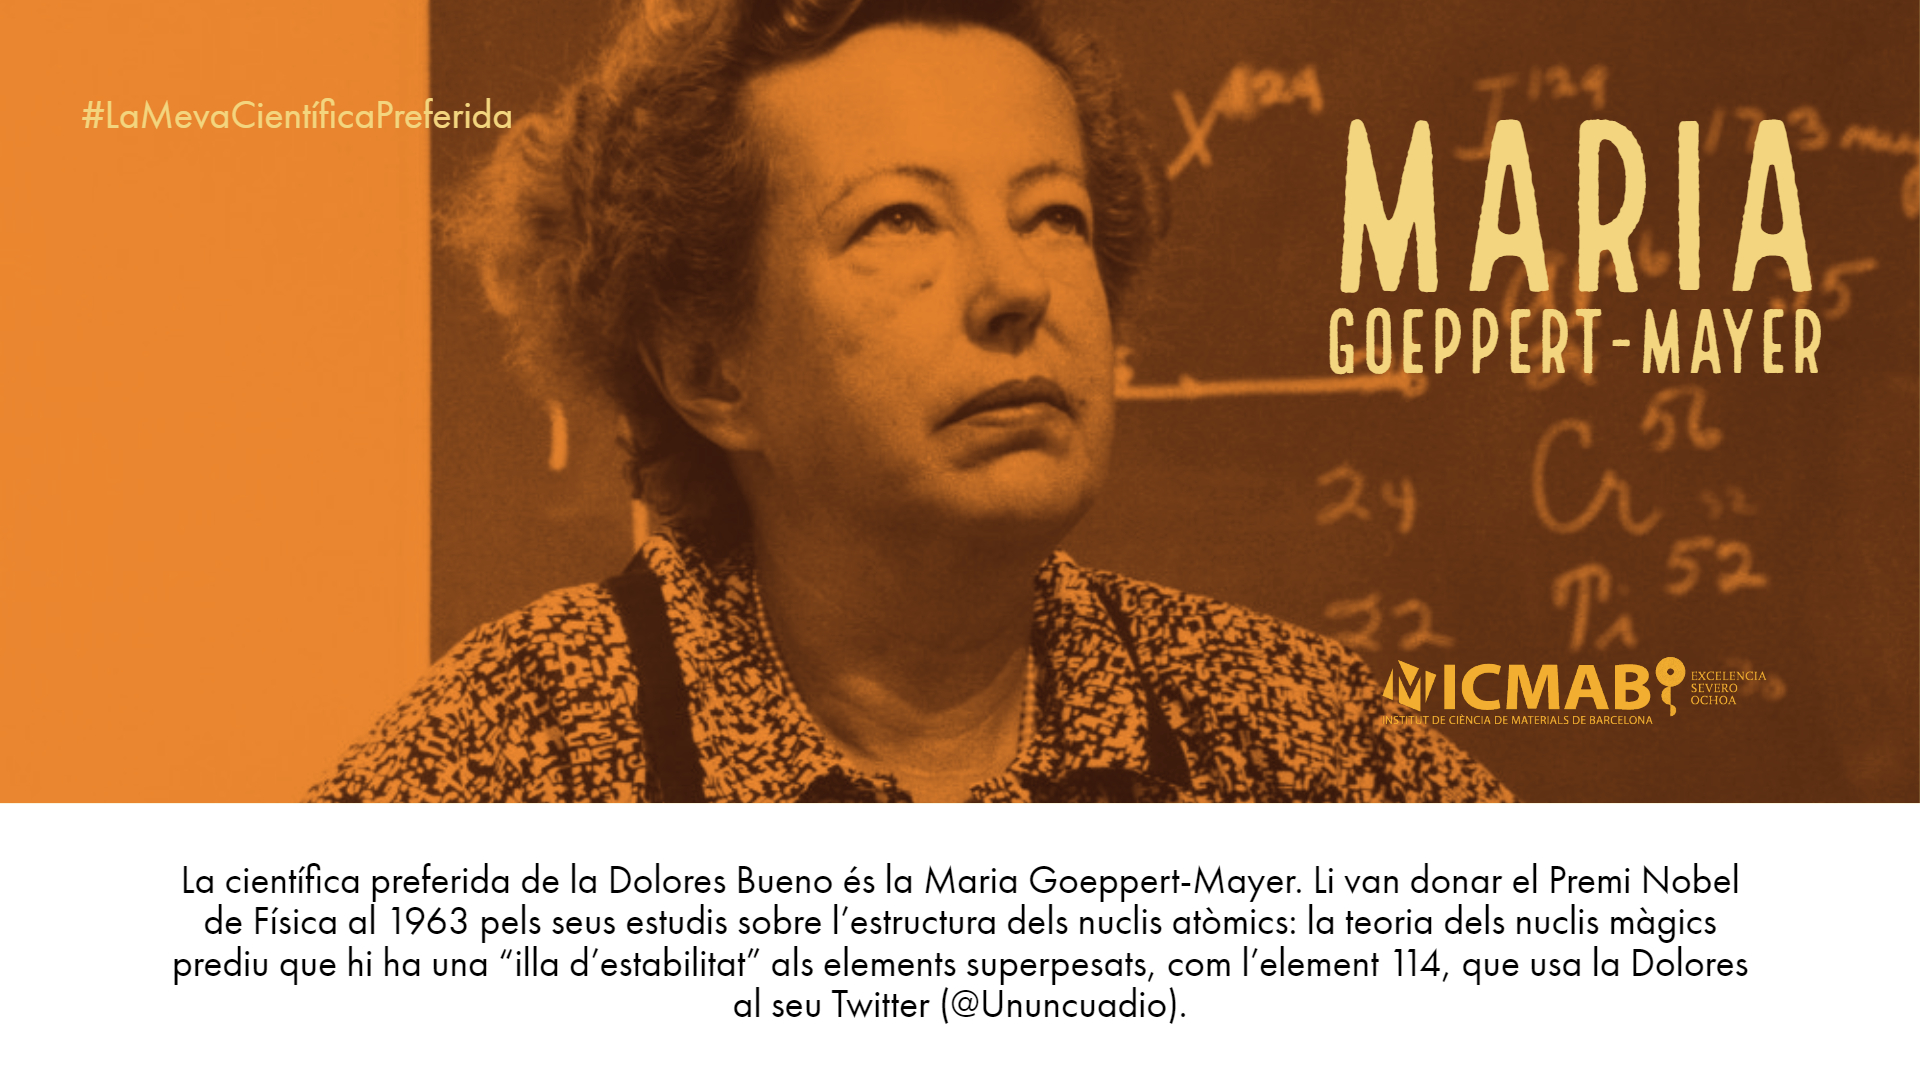 goeppert mayer